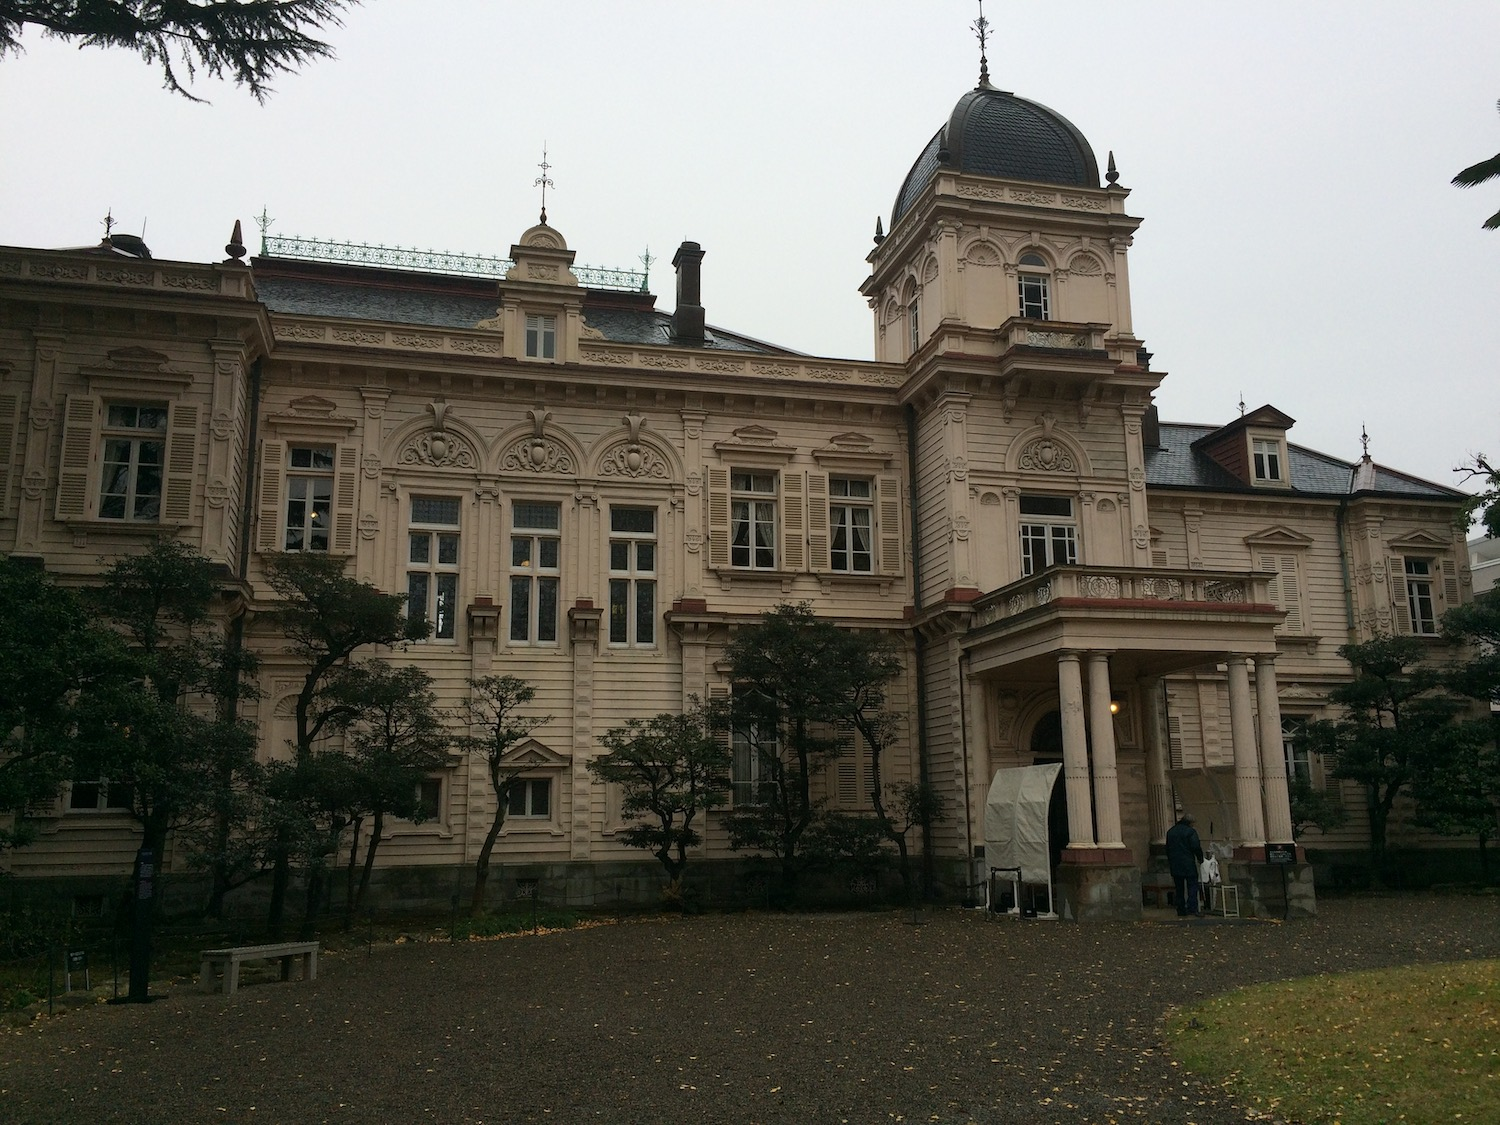 The former residence of Iwasaki Hisaya, an industrialist from the Meiji to Show periods (i.e. Mitsubishi Corporation), was constructed in 1896. It is located in Ikenohatai. (旧岩崎邸庭園)